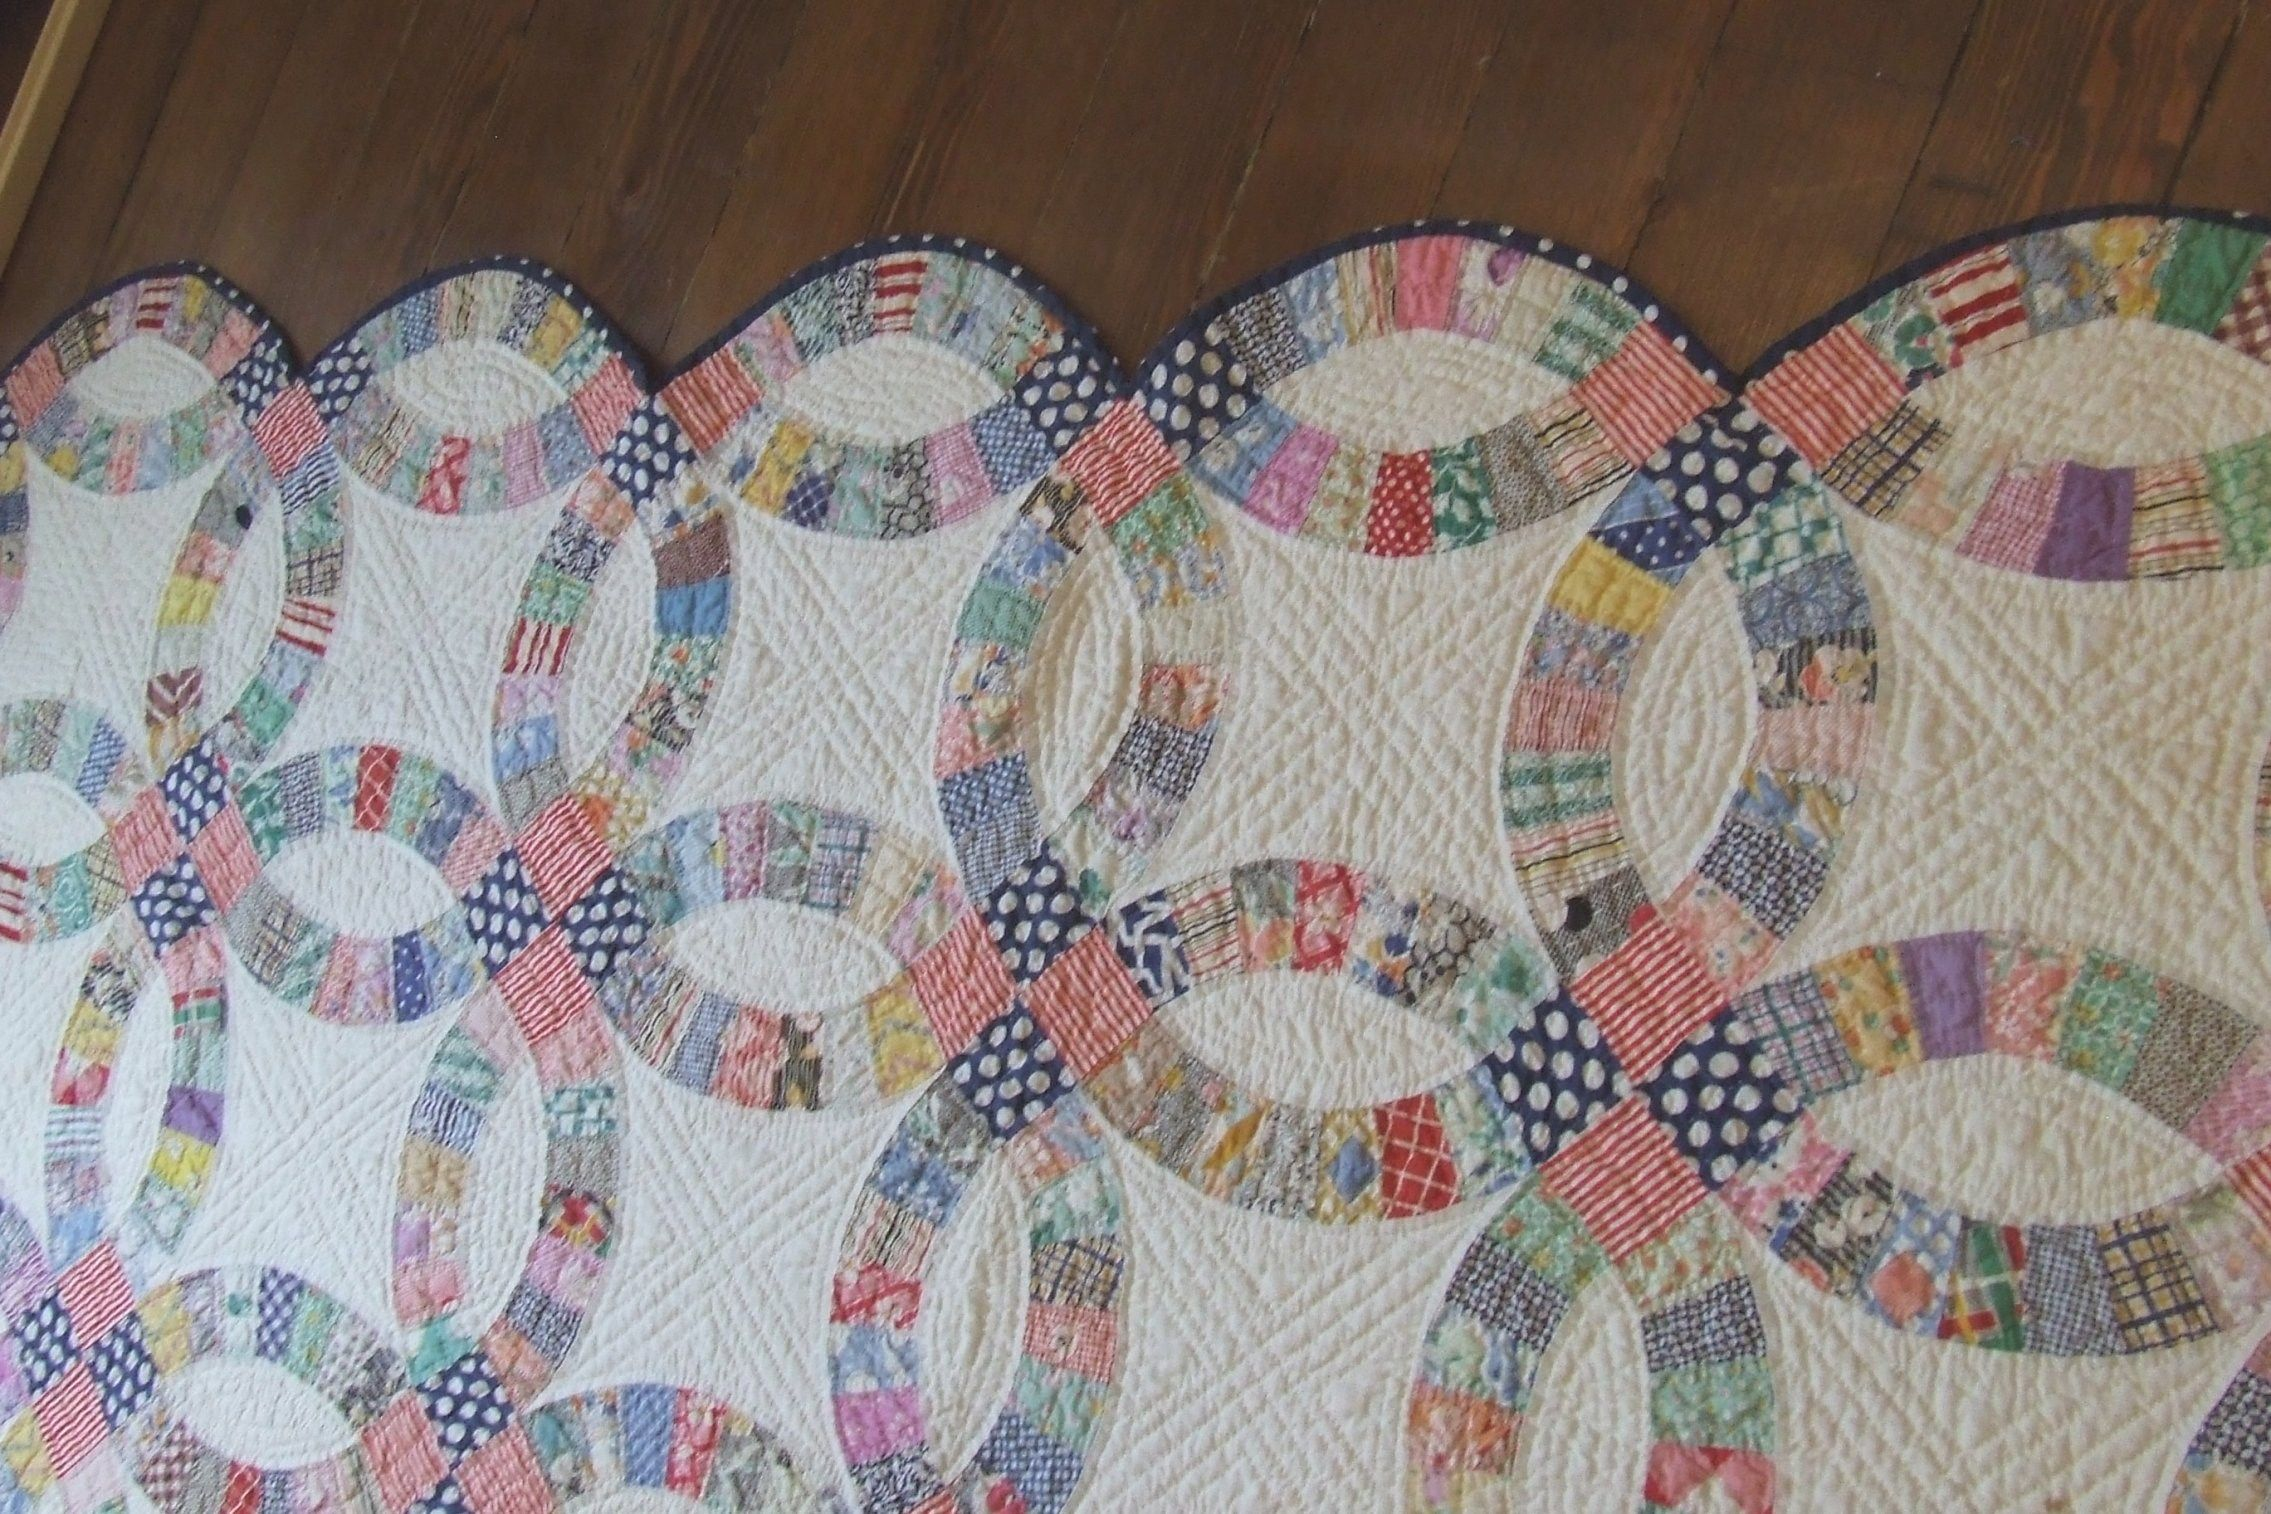 Easy Double Wedding Ring Quilt Pattern | Double wedding rings and ... : double wedding quilt pattern - Adamdwight.com